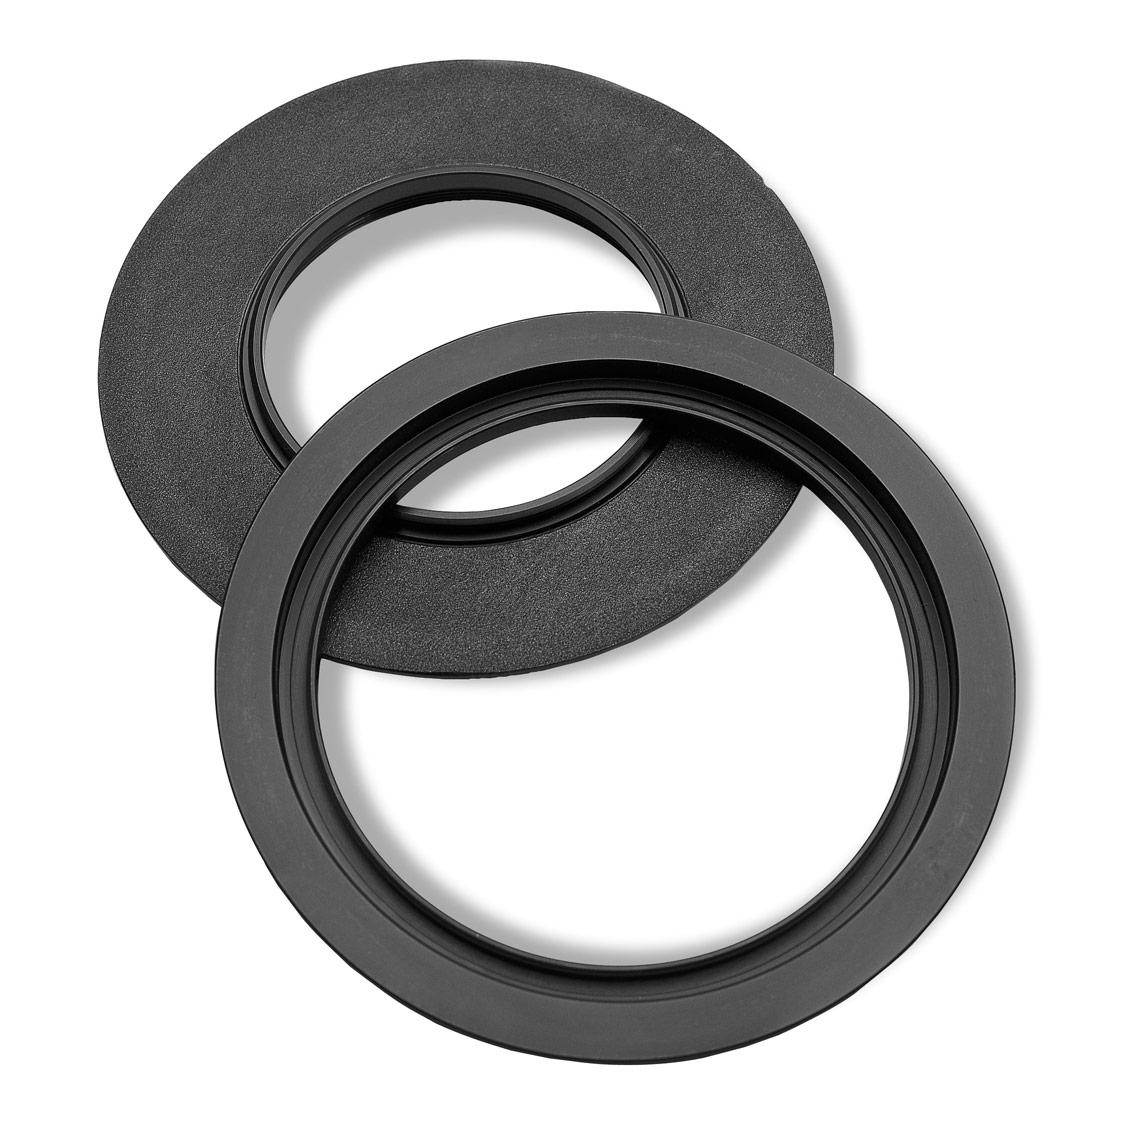 LEE 62mm Wide Adapter for 100mm Filter Holder